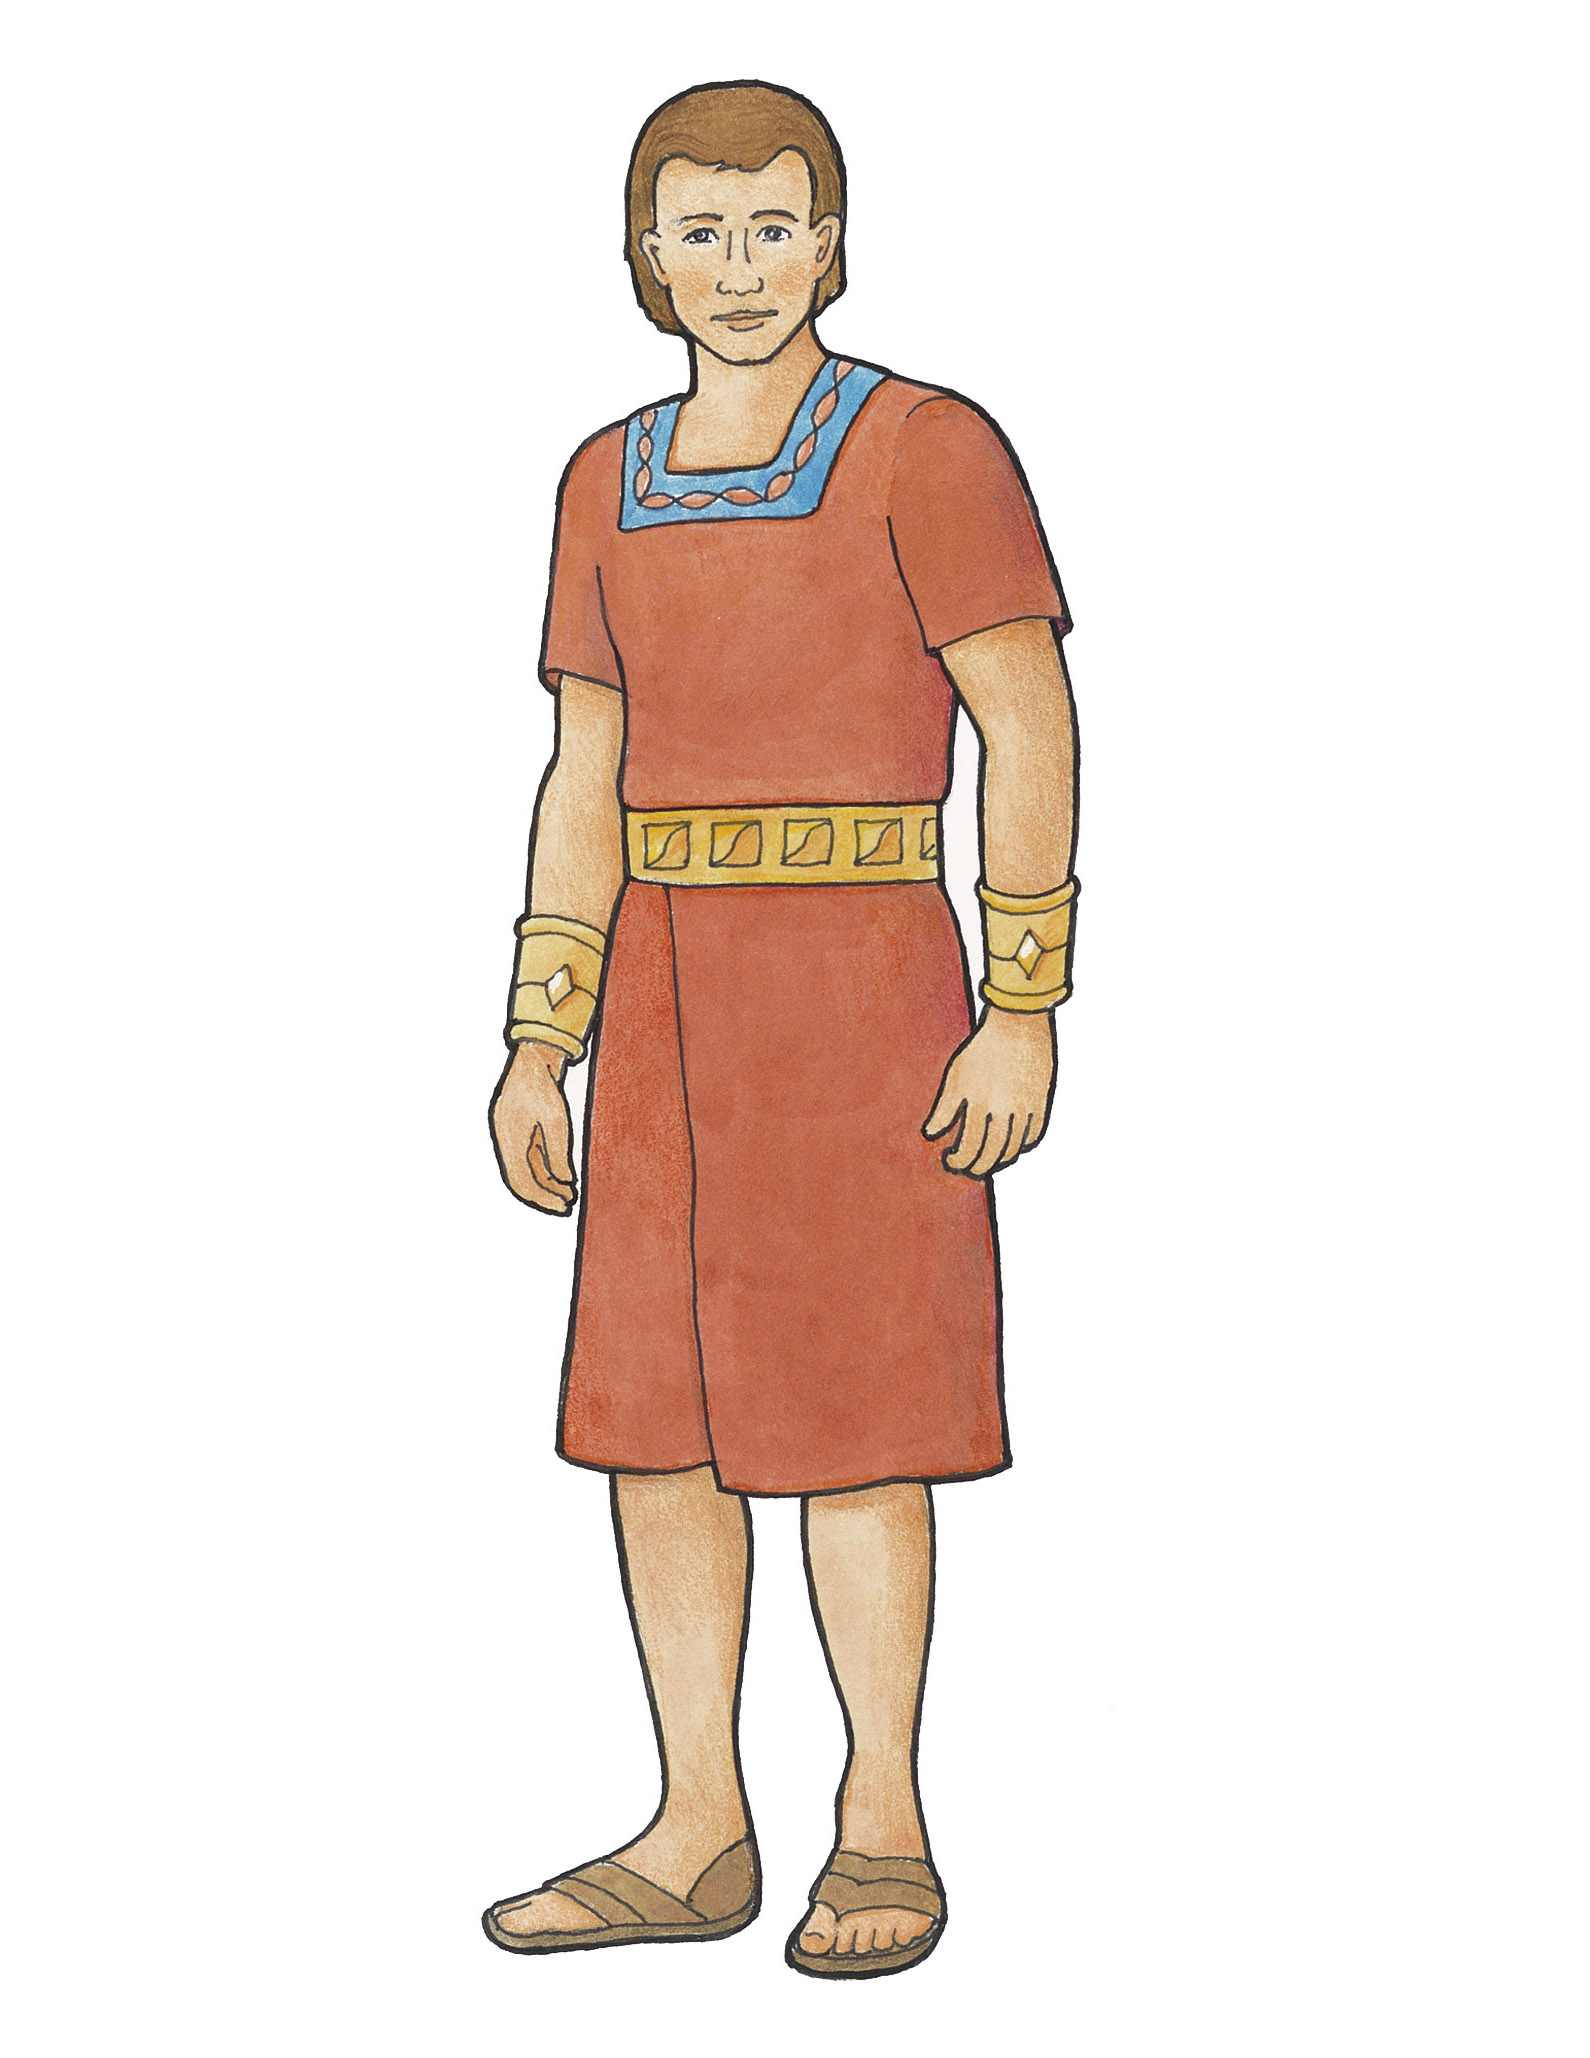 Alma, a character from the Book of Mormon, dressed in traditional clothing.